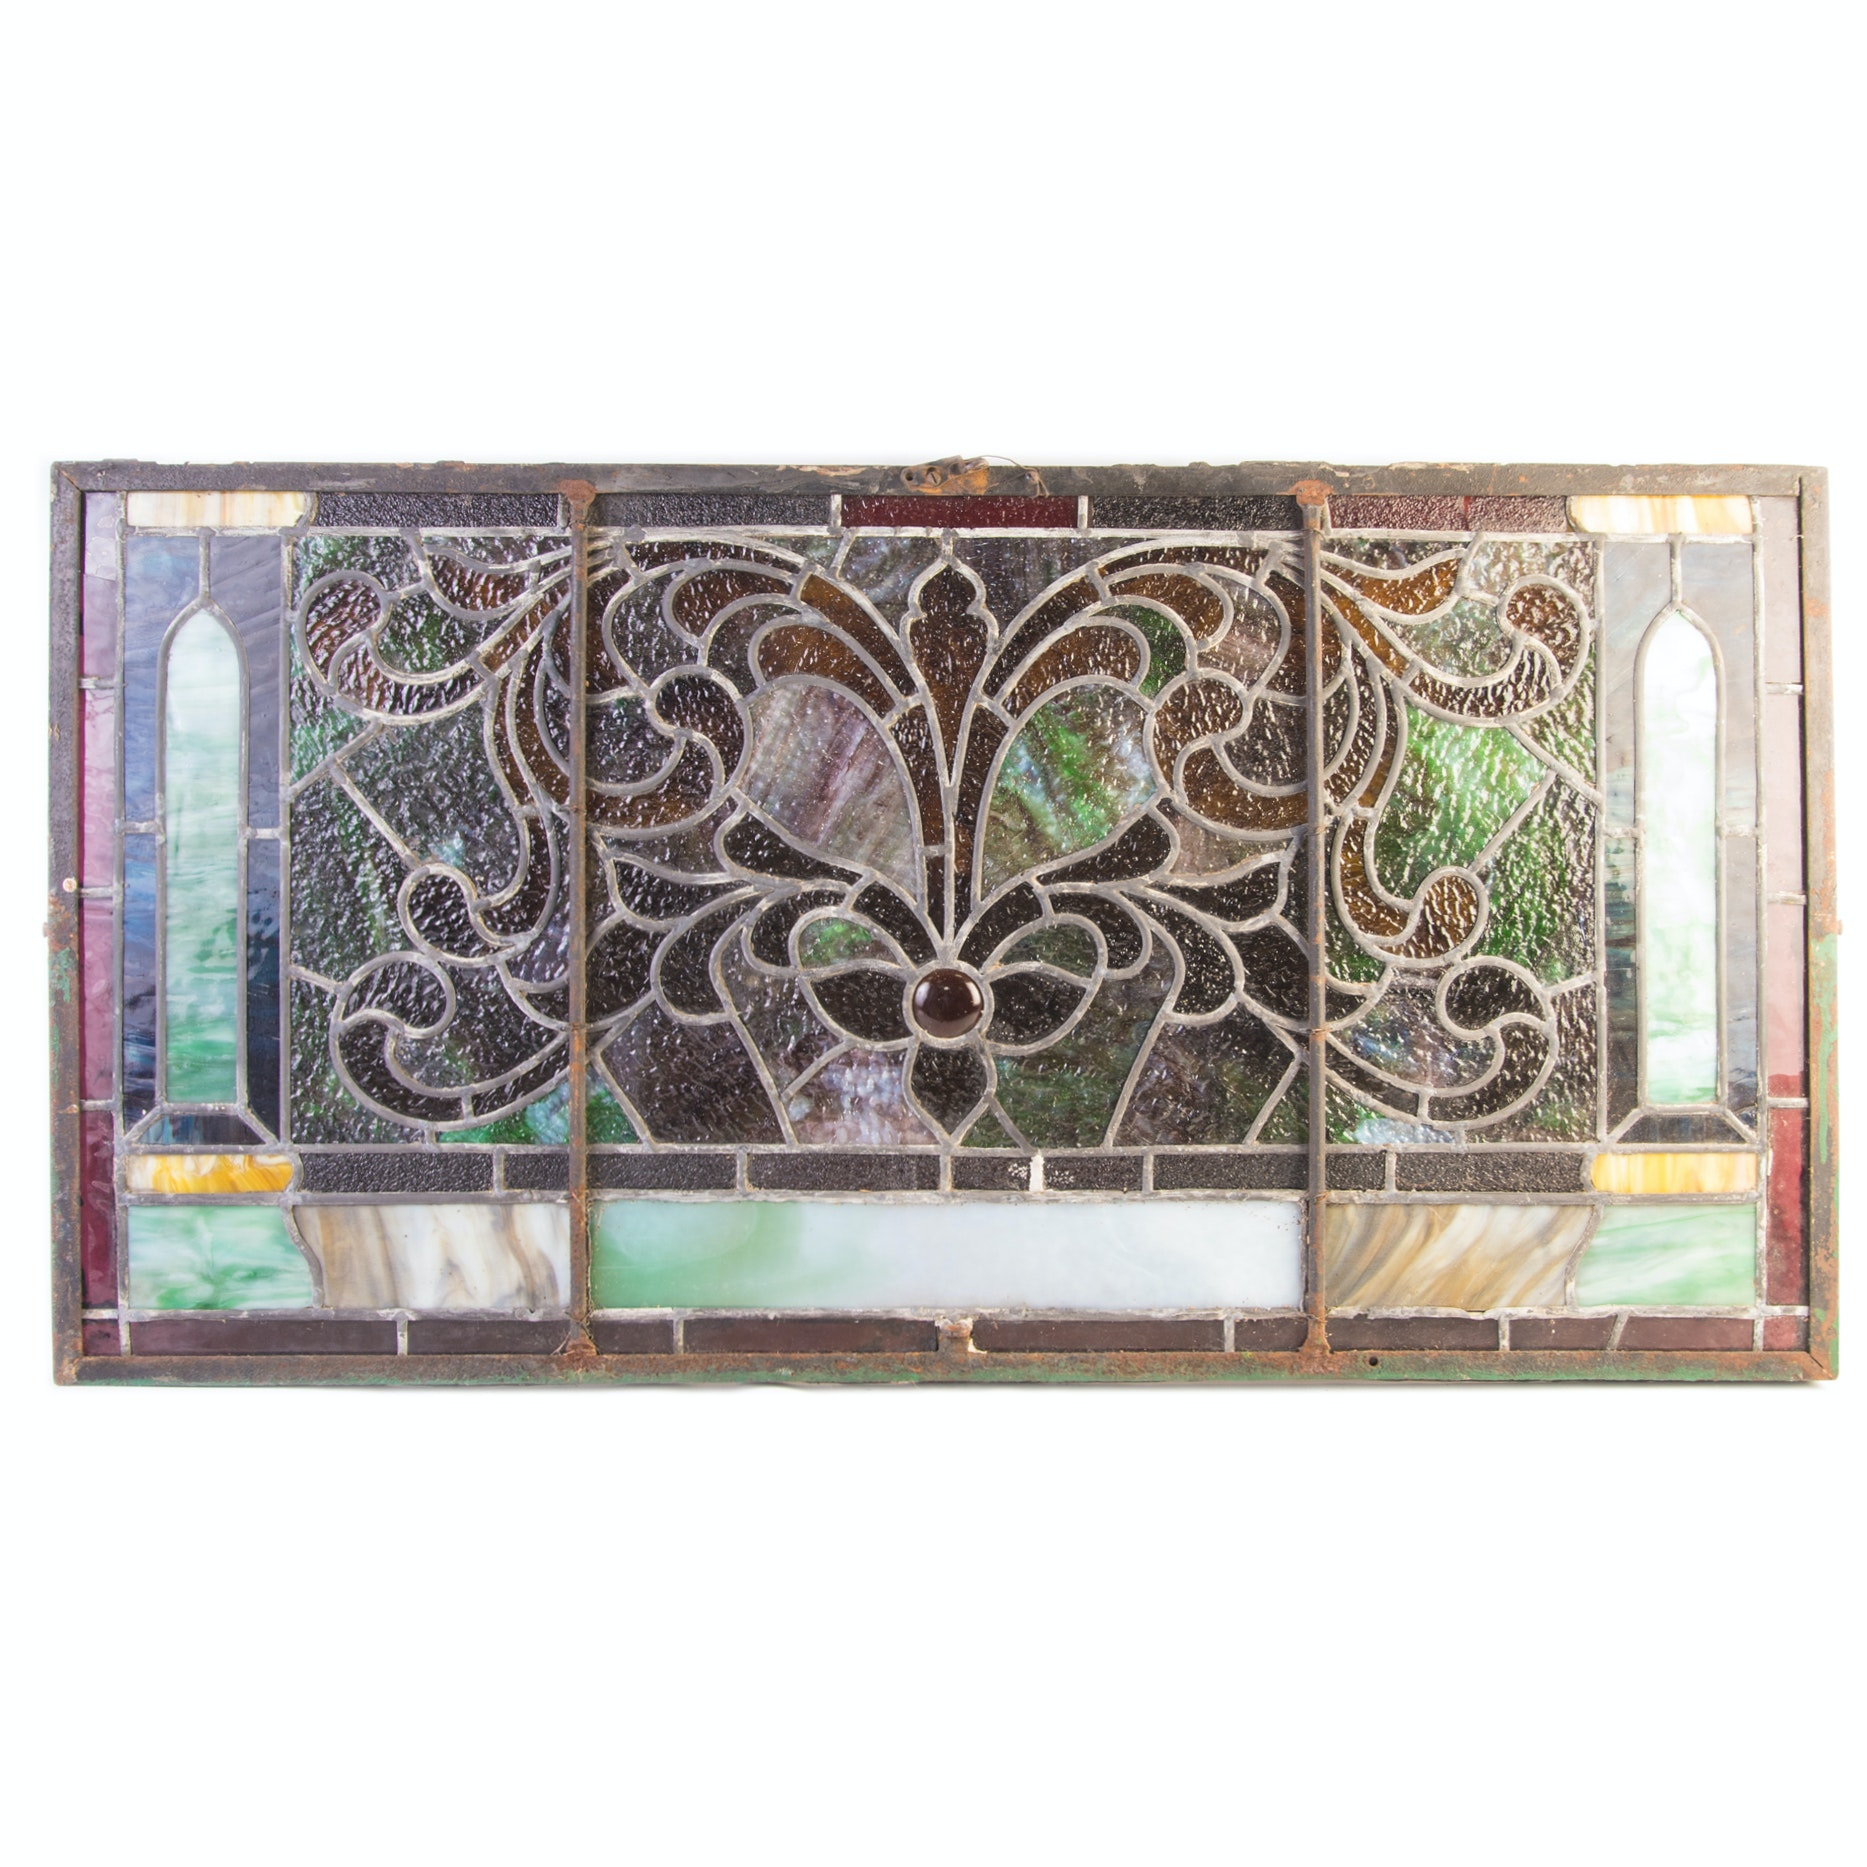 Antique Stained Glass Transom Window Panel